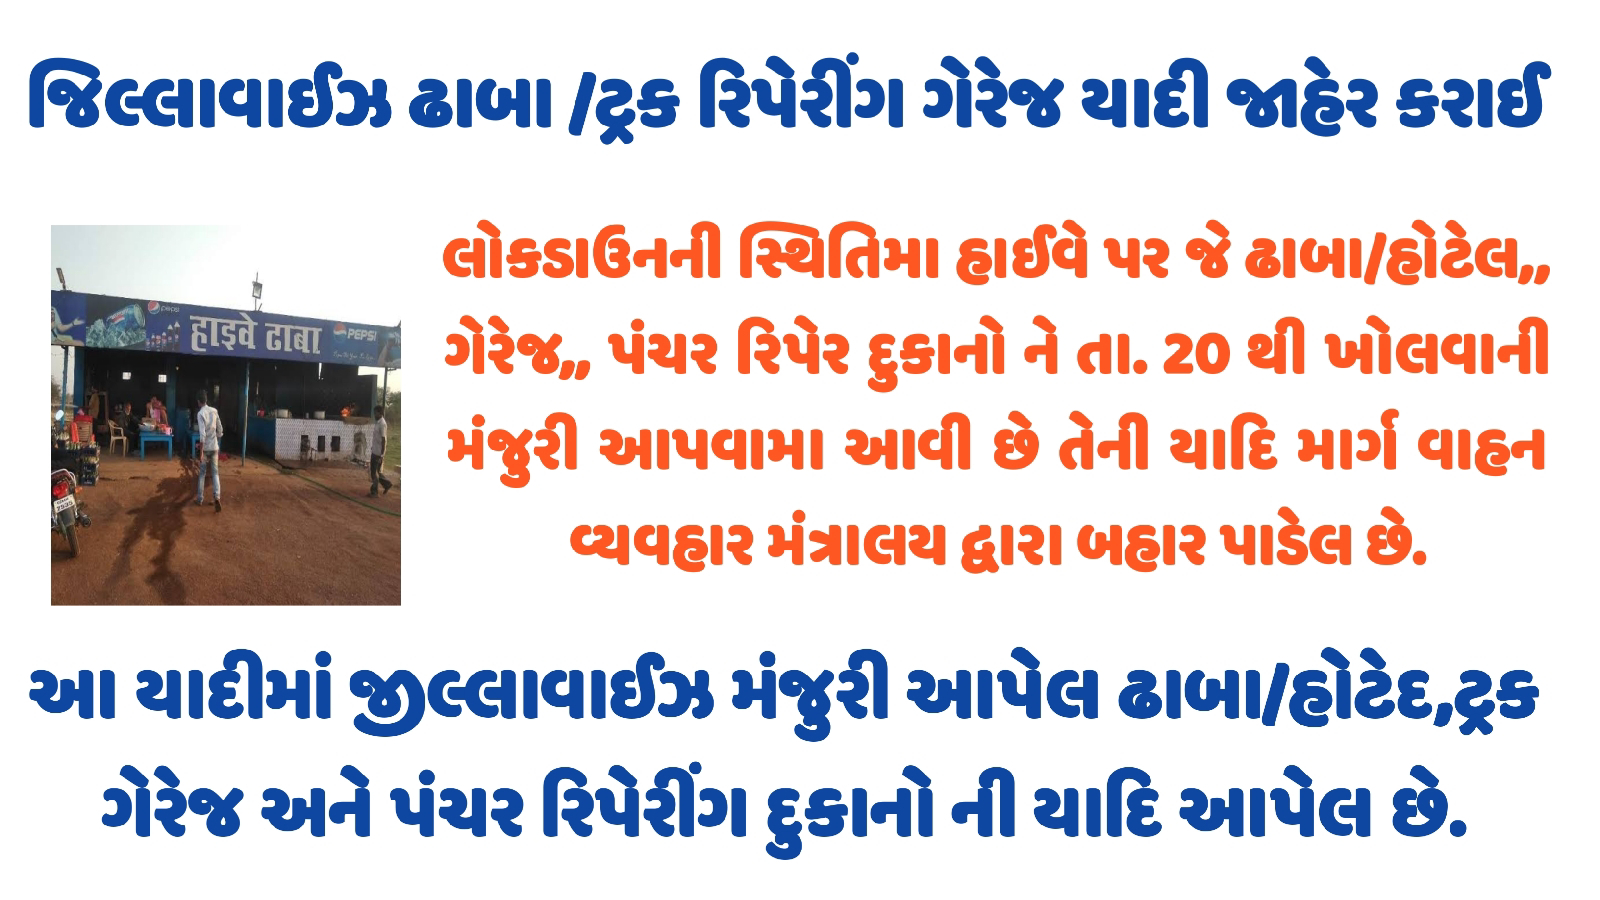 Gujarat : List of Dhaba , hotels and Auto garage opened in the state of Gujarat during lockdown period